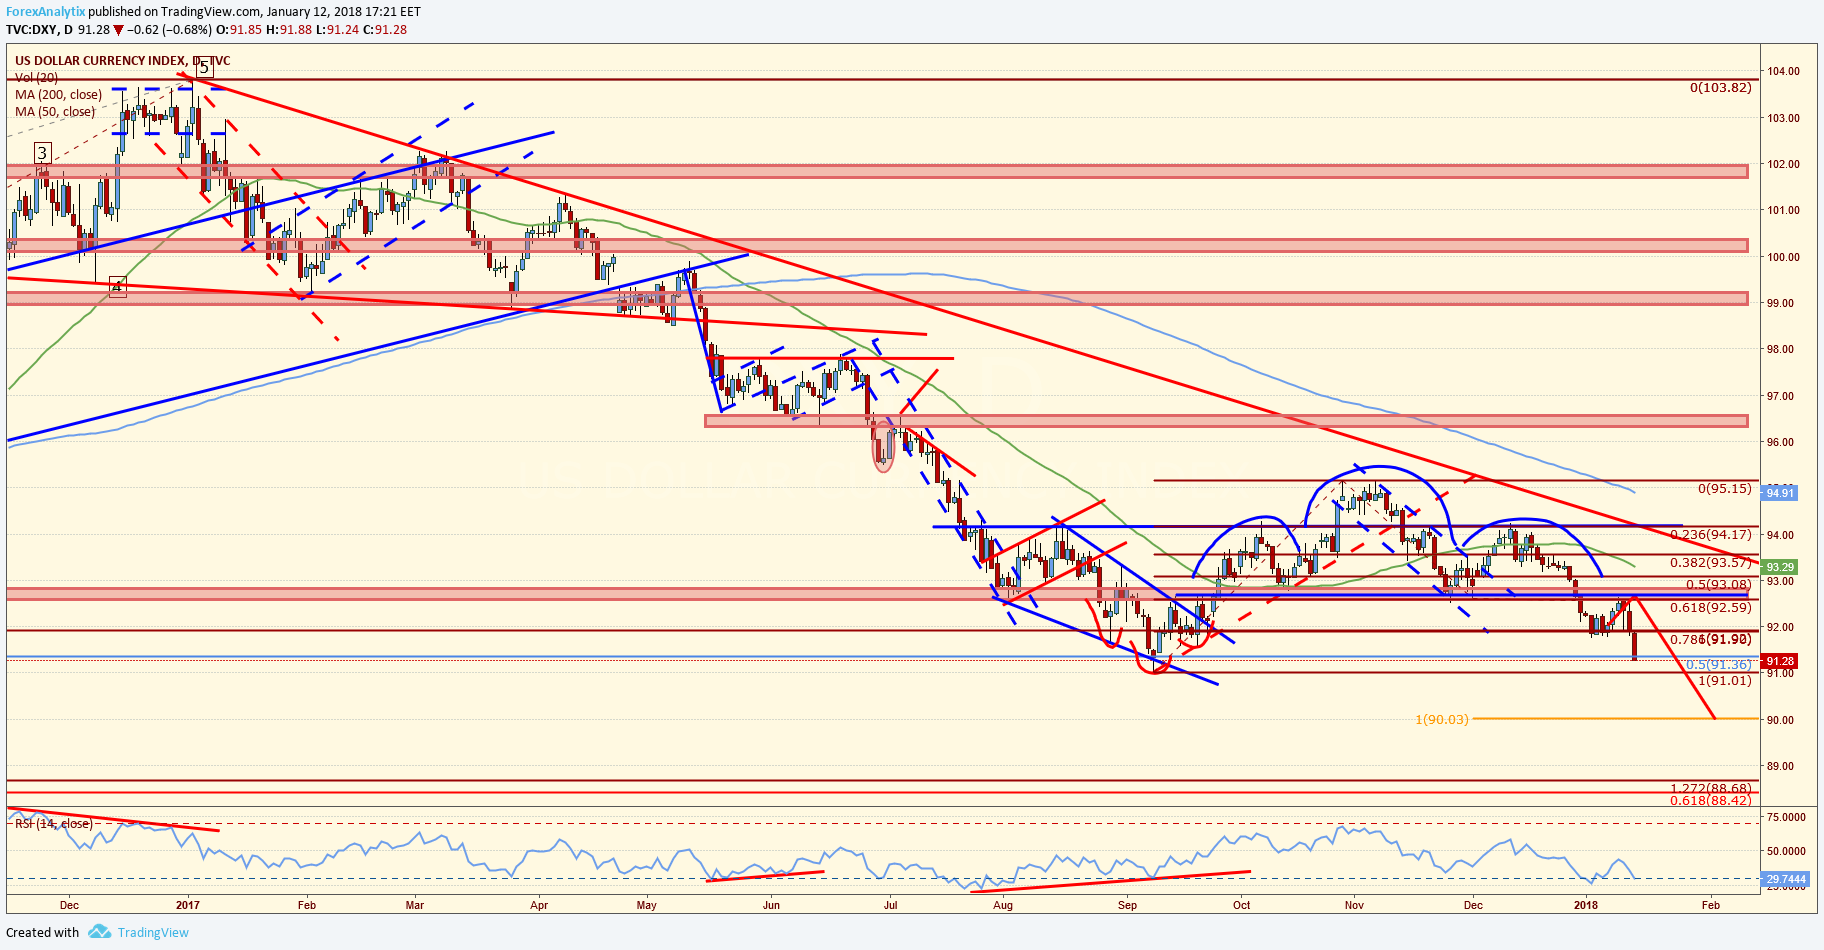 DXY 13-01-18 Daily